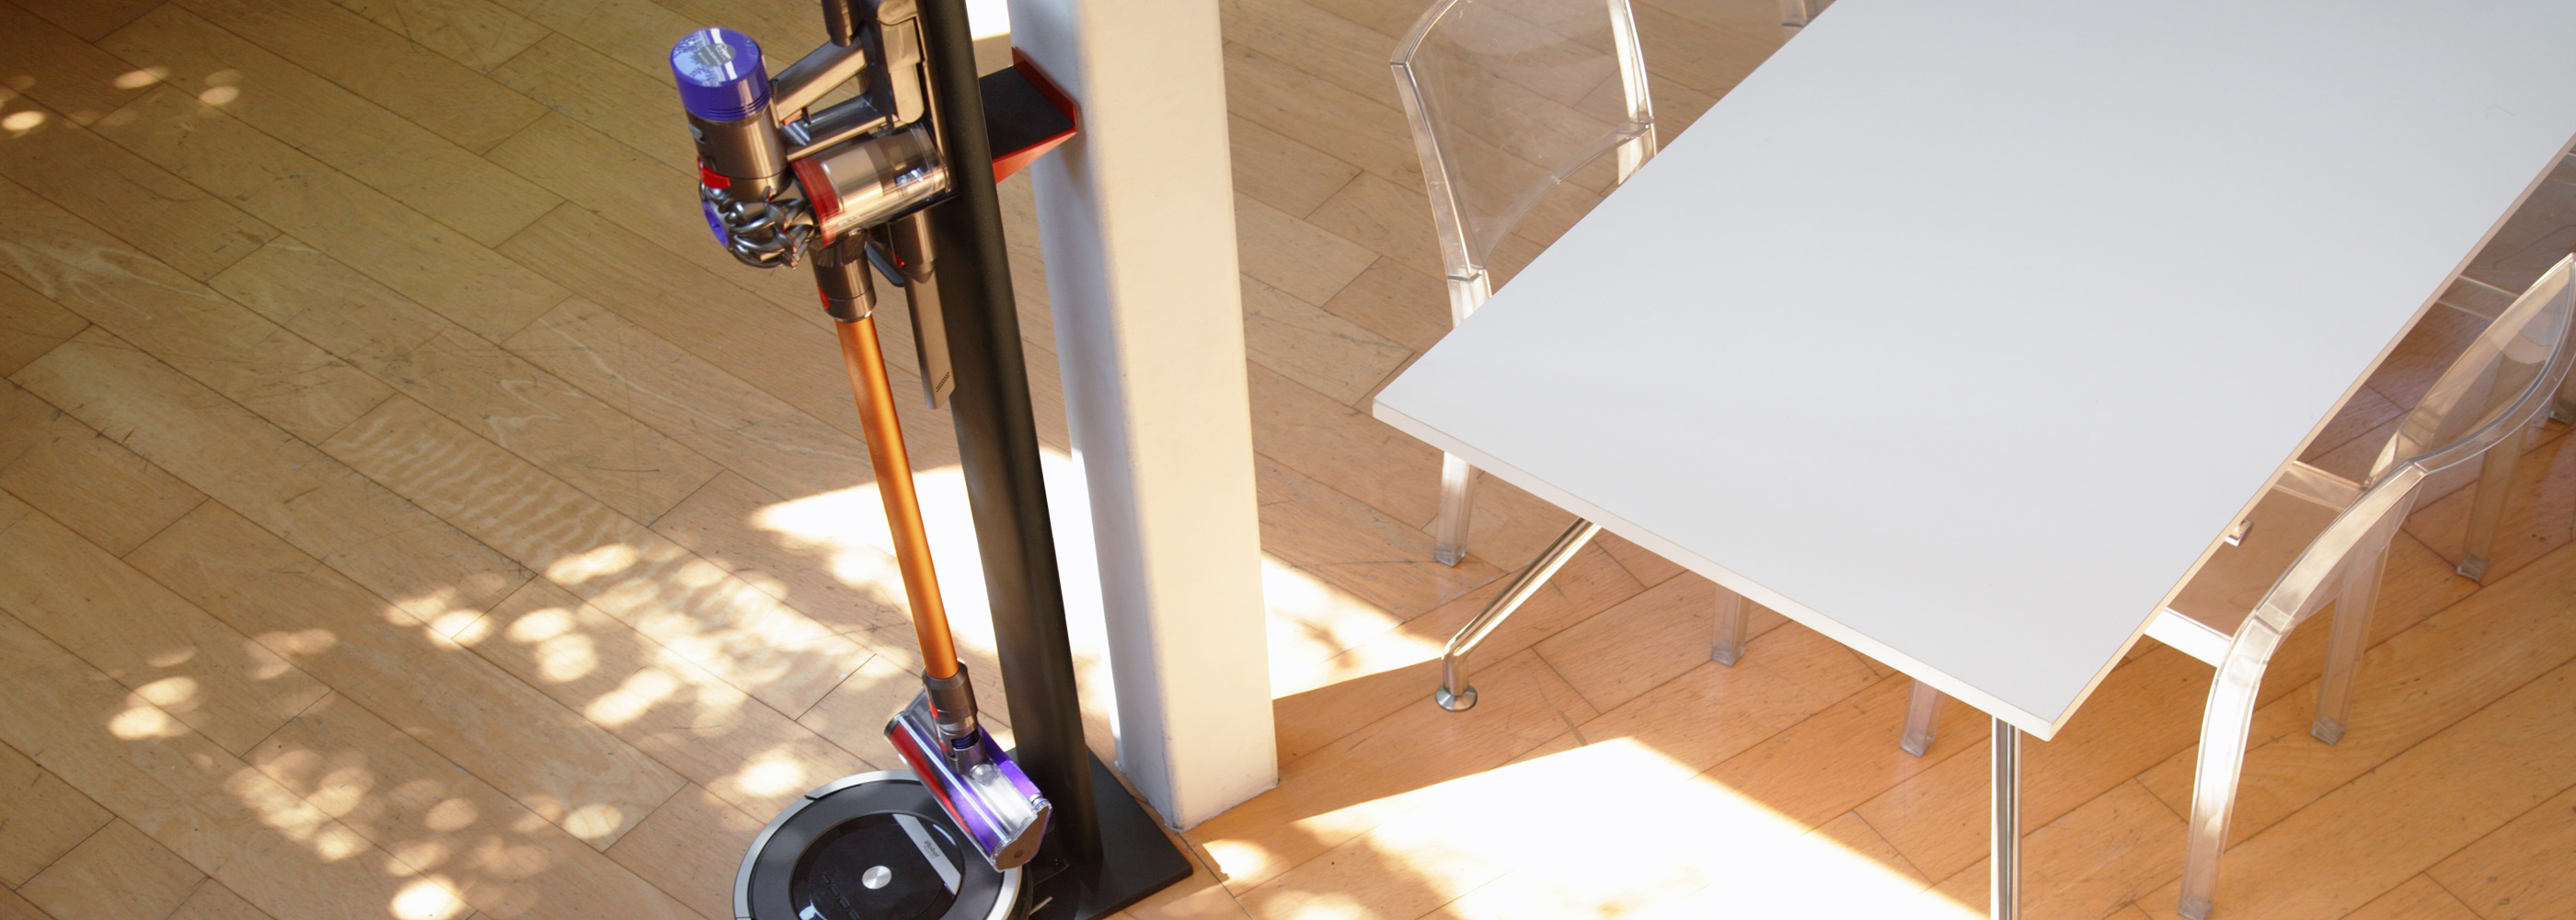 WALL TV CLEANER STAND V3 クリーナースタンドV3 スタイル